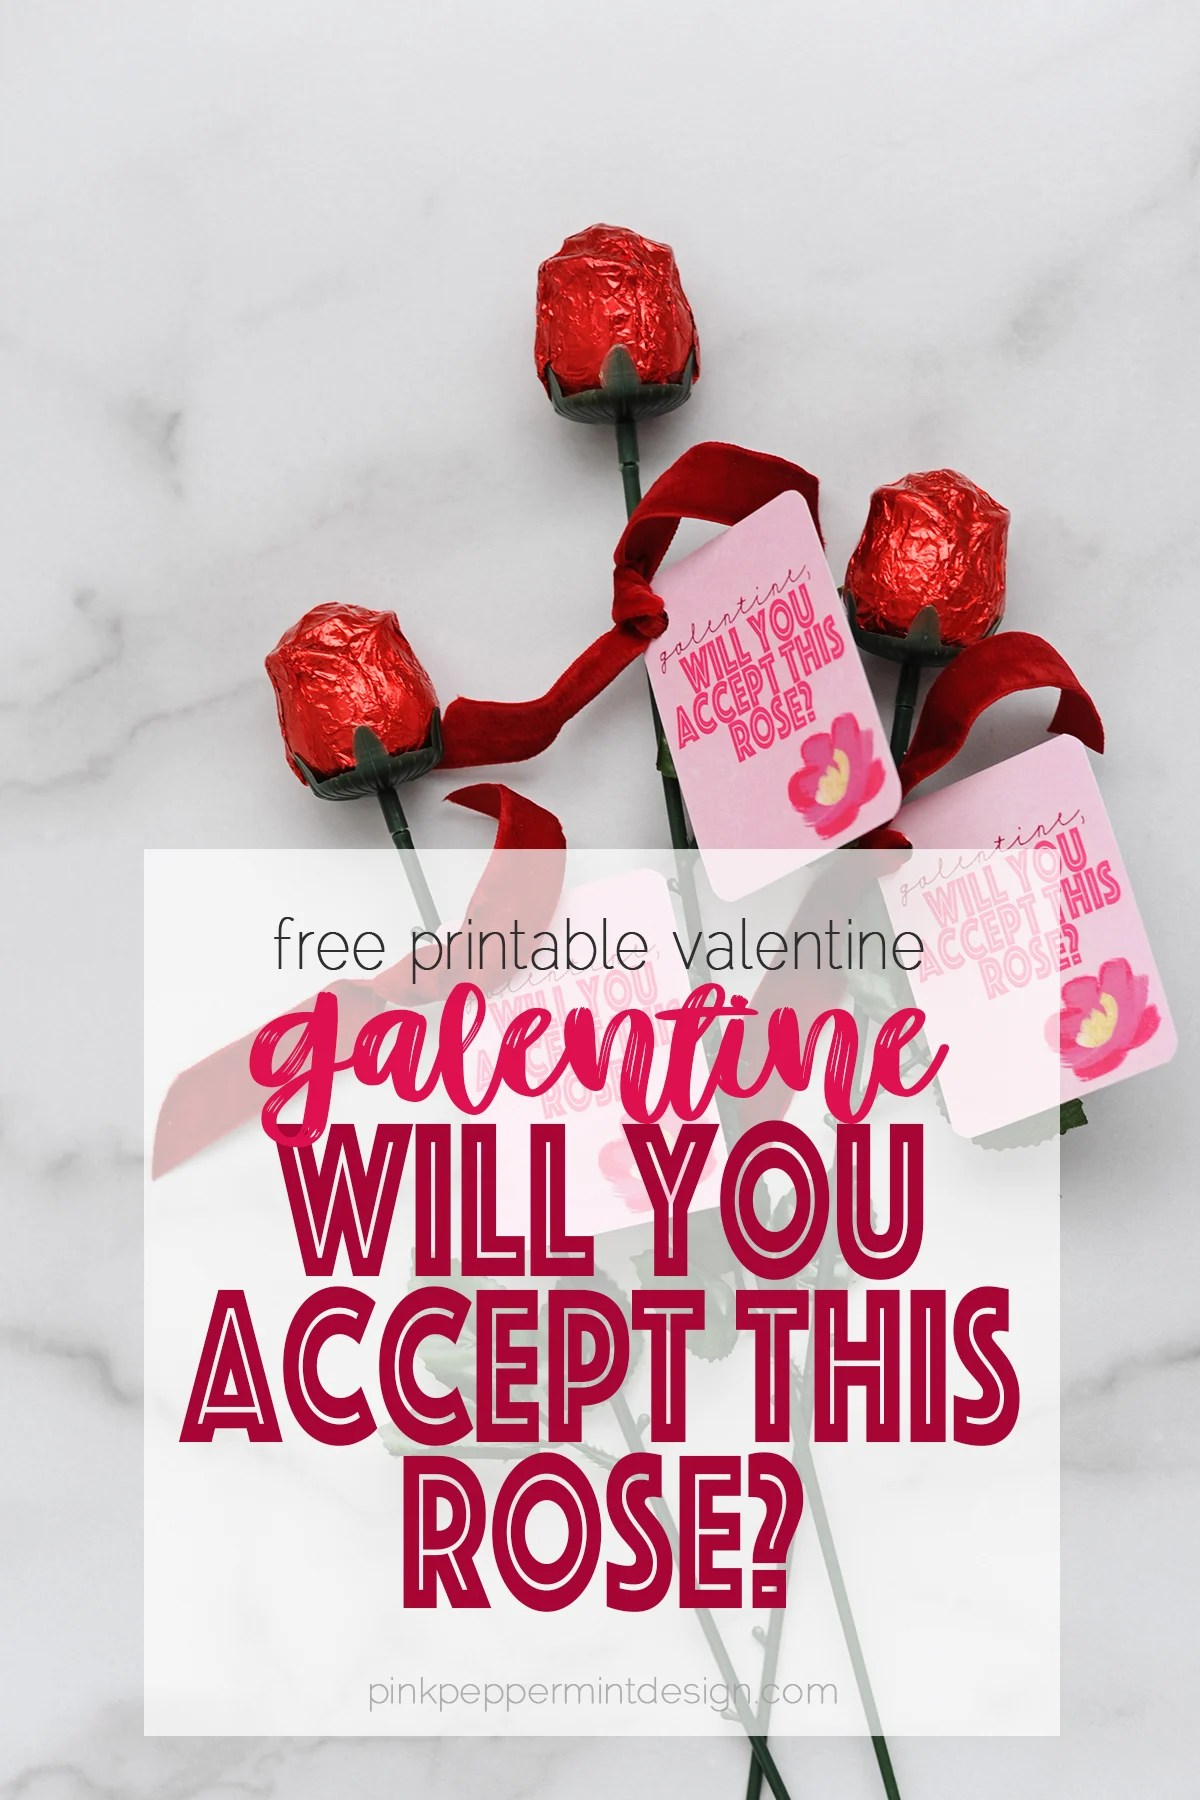 Galentine's Day Ideas : Galentine, Will You Accept This Rose? Free Printable